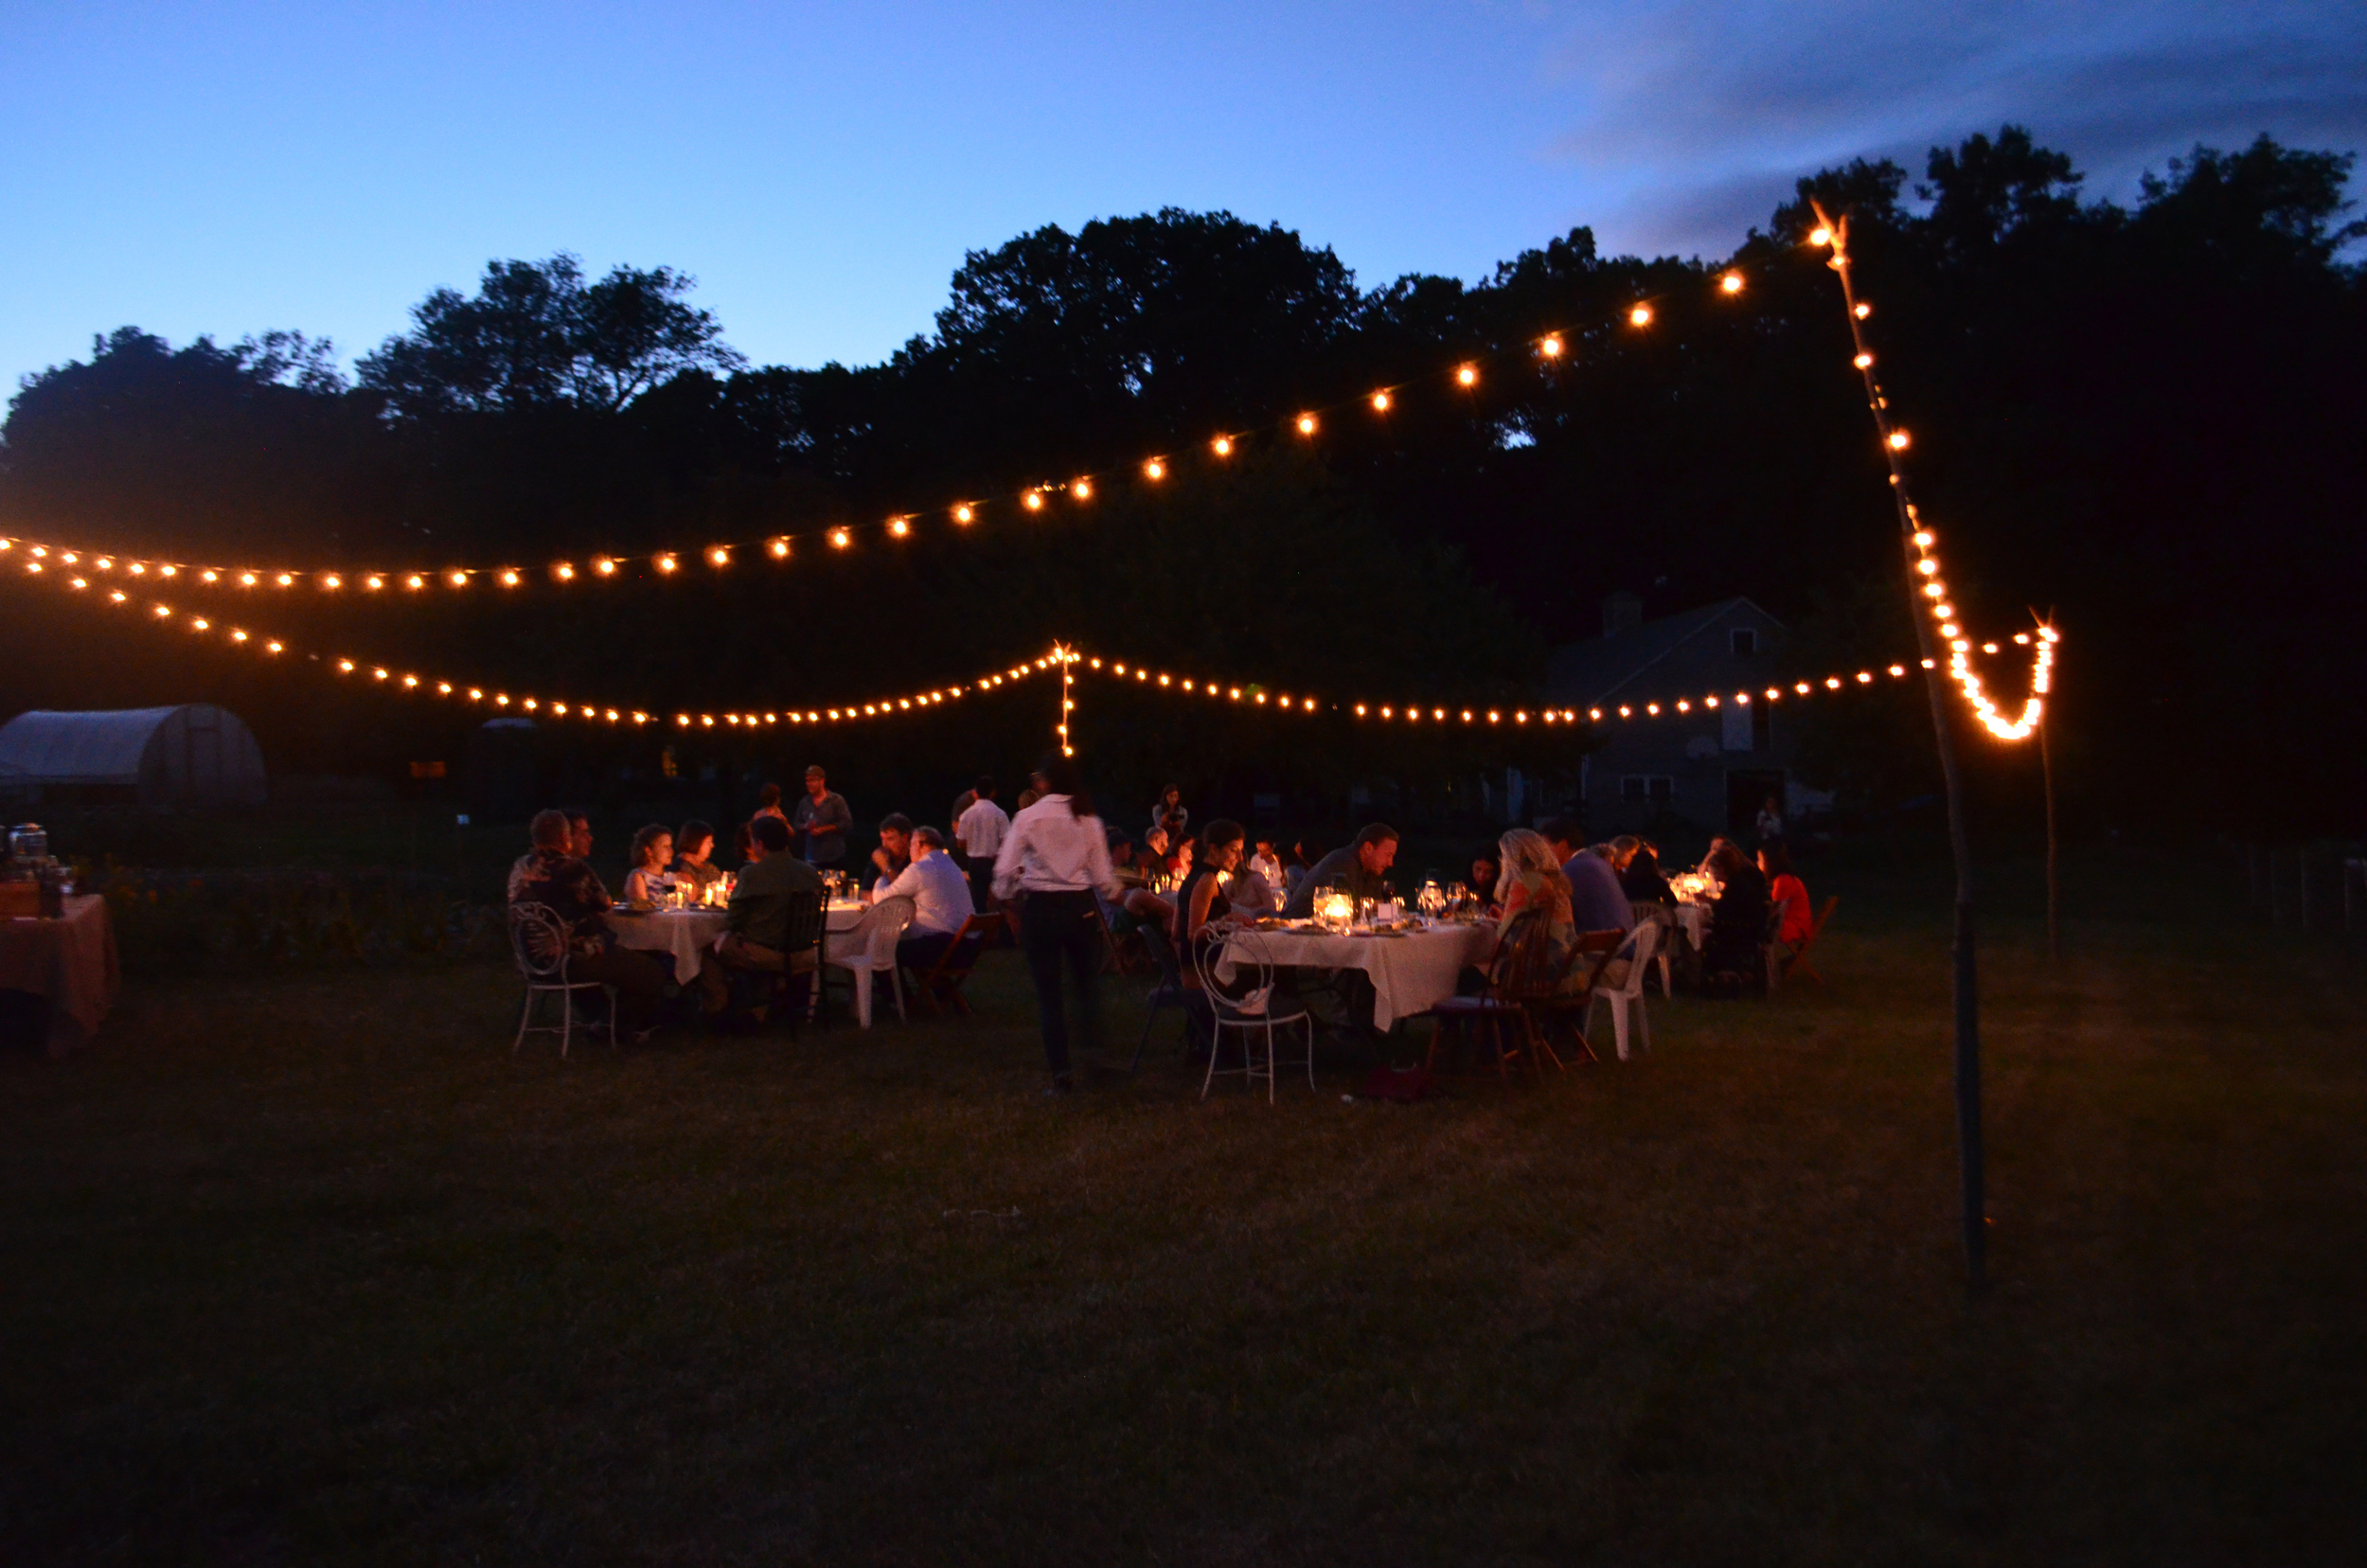 Dinner under the lights on Eddy Farm